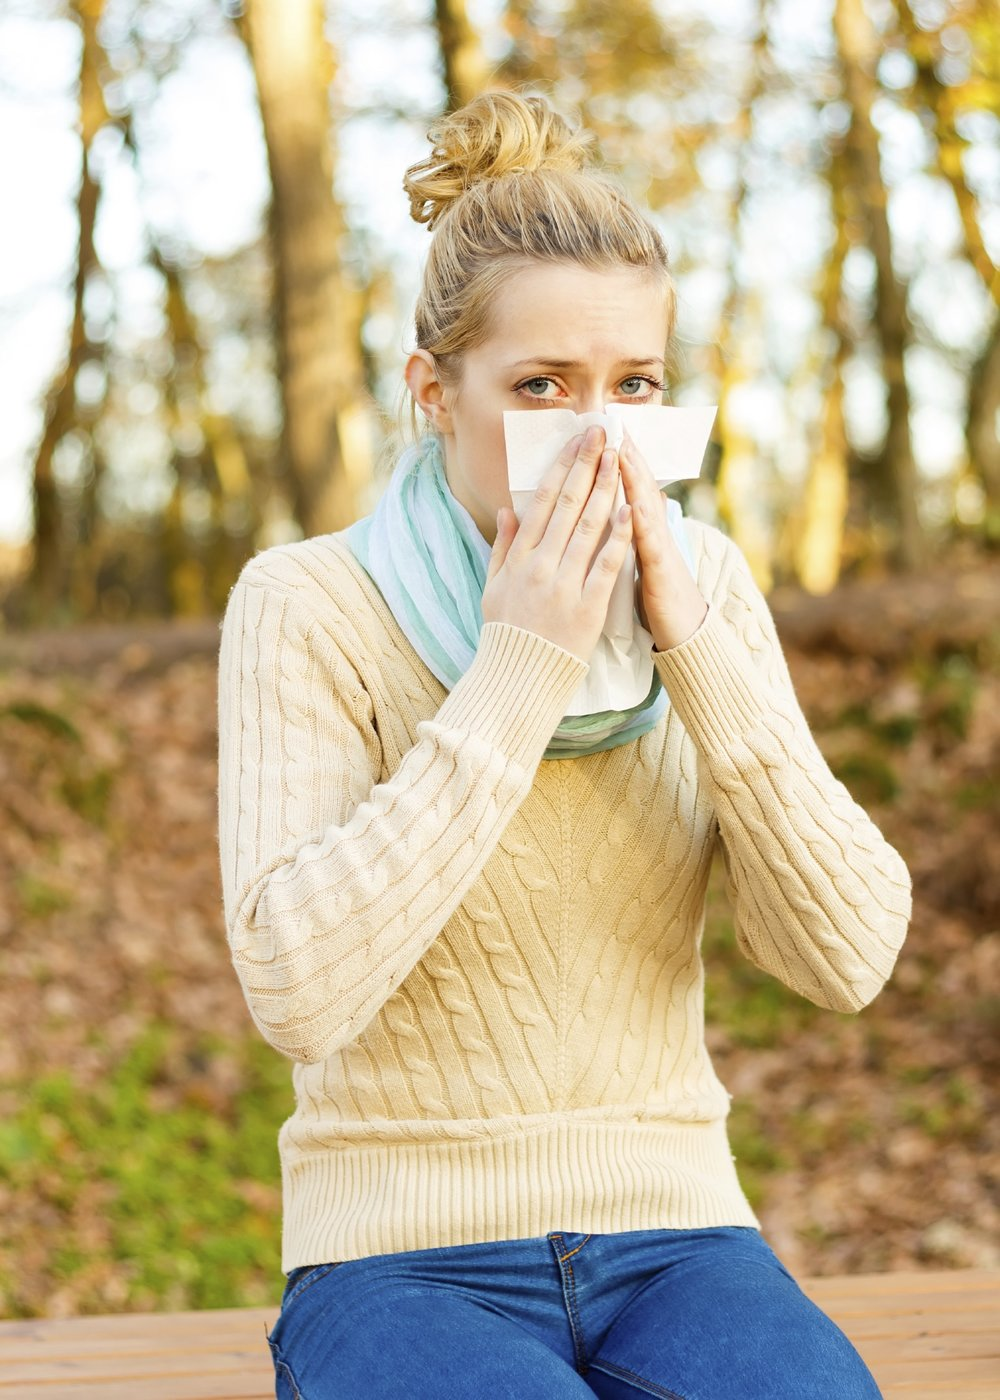 Blonde woman blowing nose.jpg